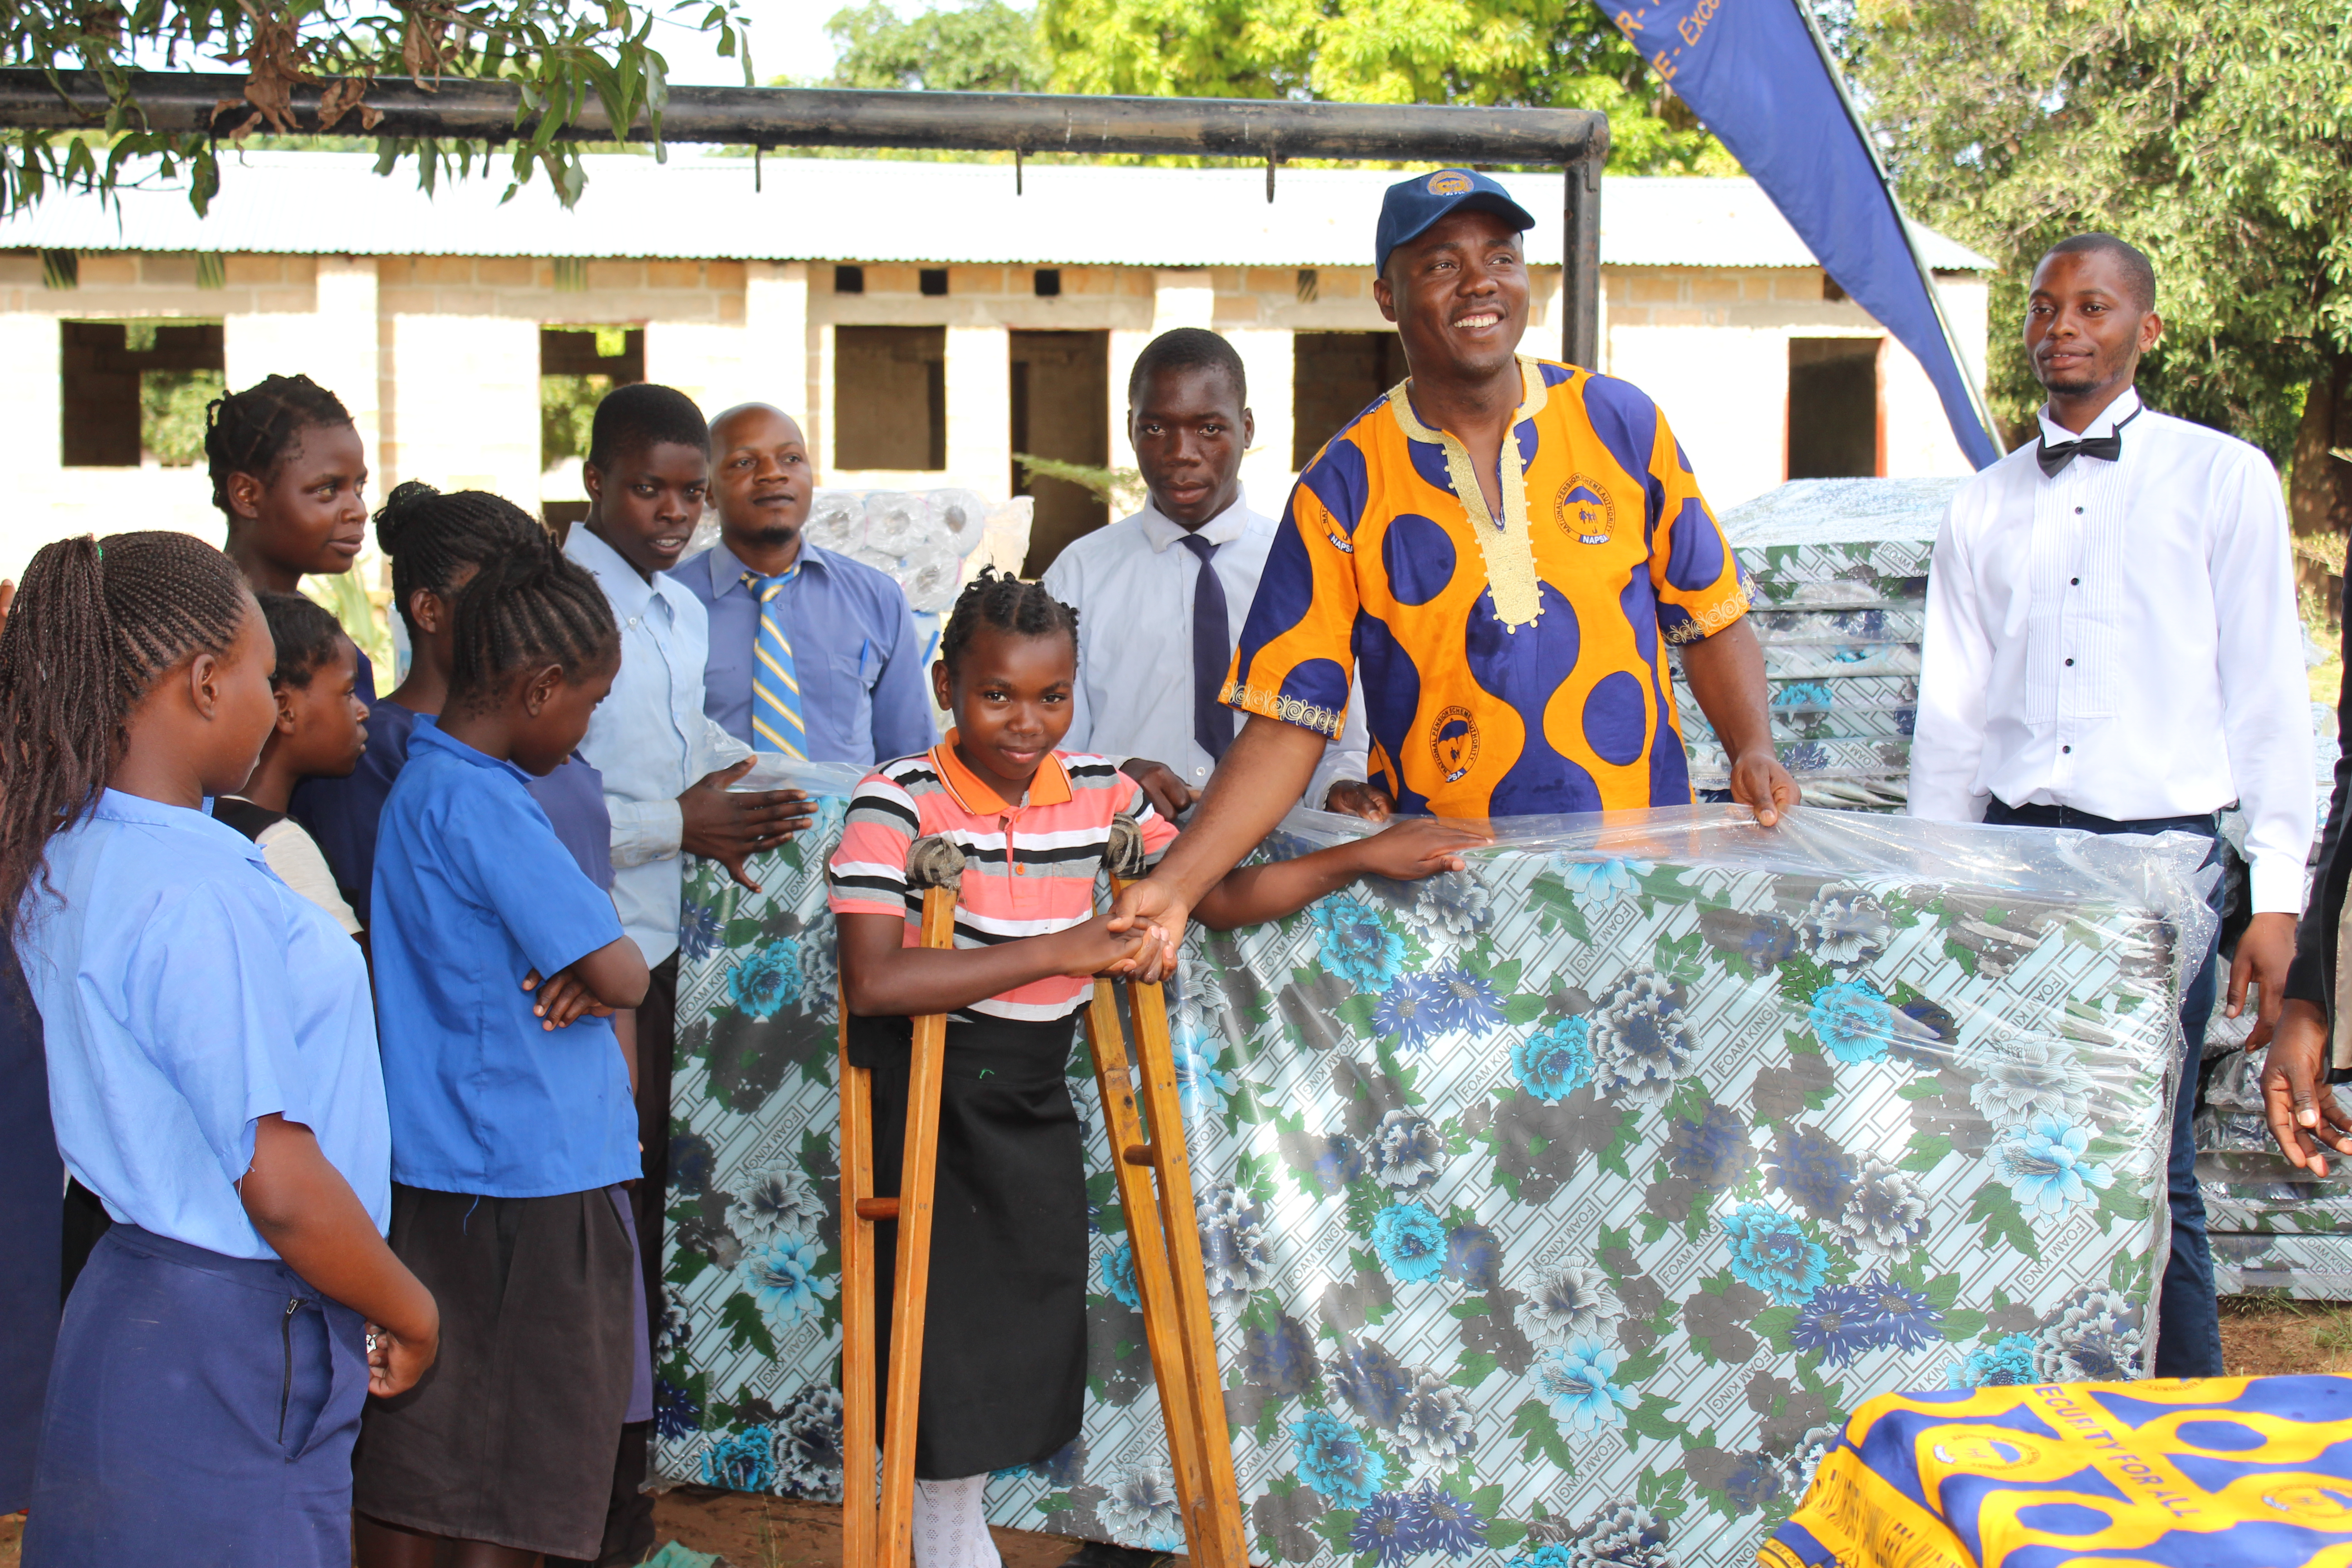 NAPSA Regional Manager North Mr. Mushoke Namiluko donating assorted items to Chinsali Primary School pupils with special needs to help enhance their learning environment.